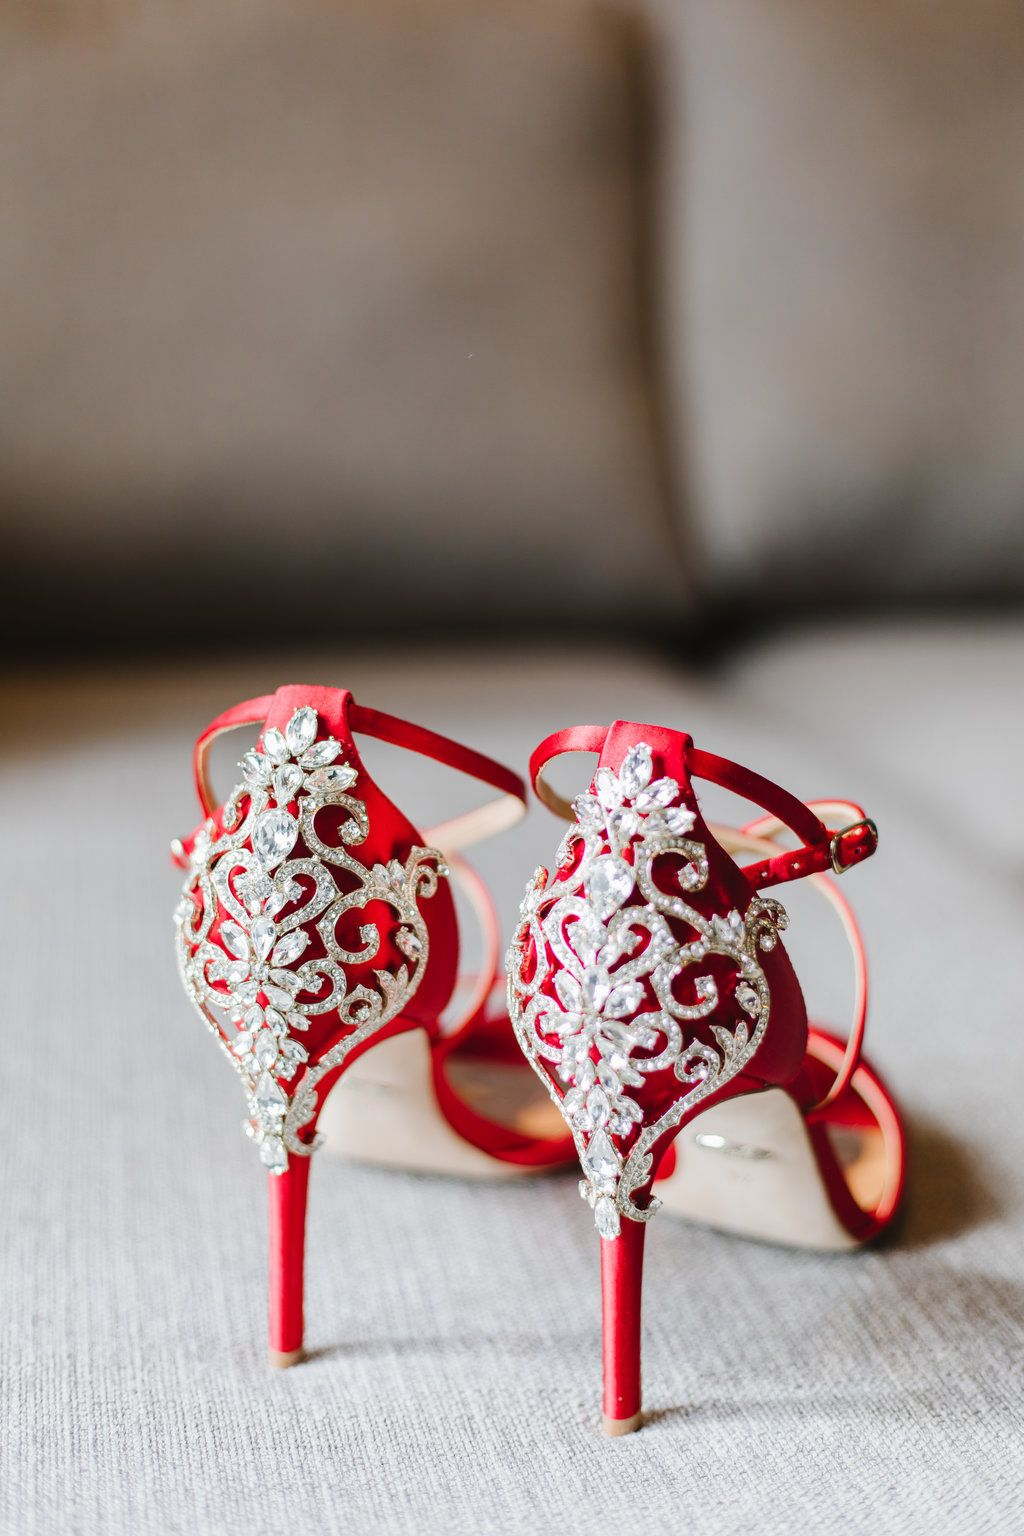 373cc4515af The most amazing red strappy shoes with rhinestones for your wedding day! I  love when brides break away from the norm